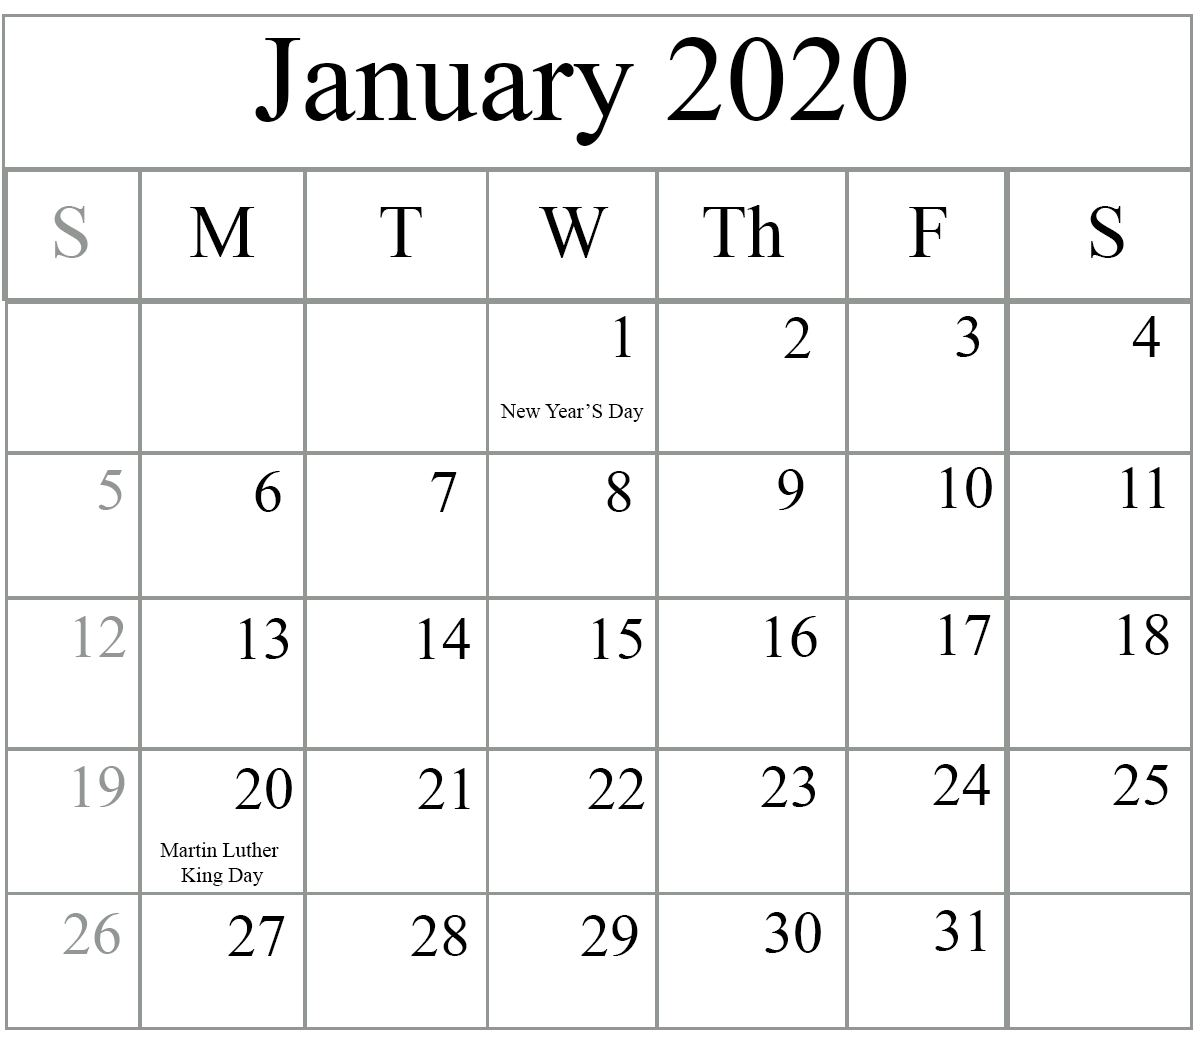 Free Blank January 2020 Calendar Printable In Pdf, Word, Excel Intended For Full Page January Calendar